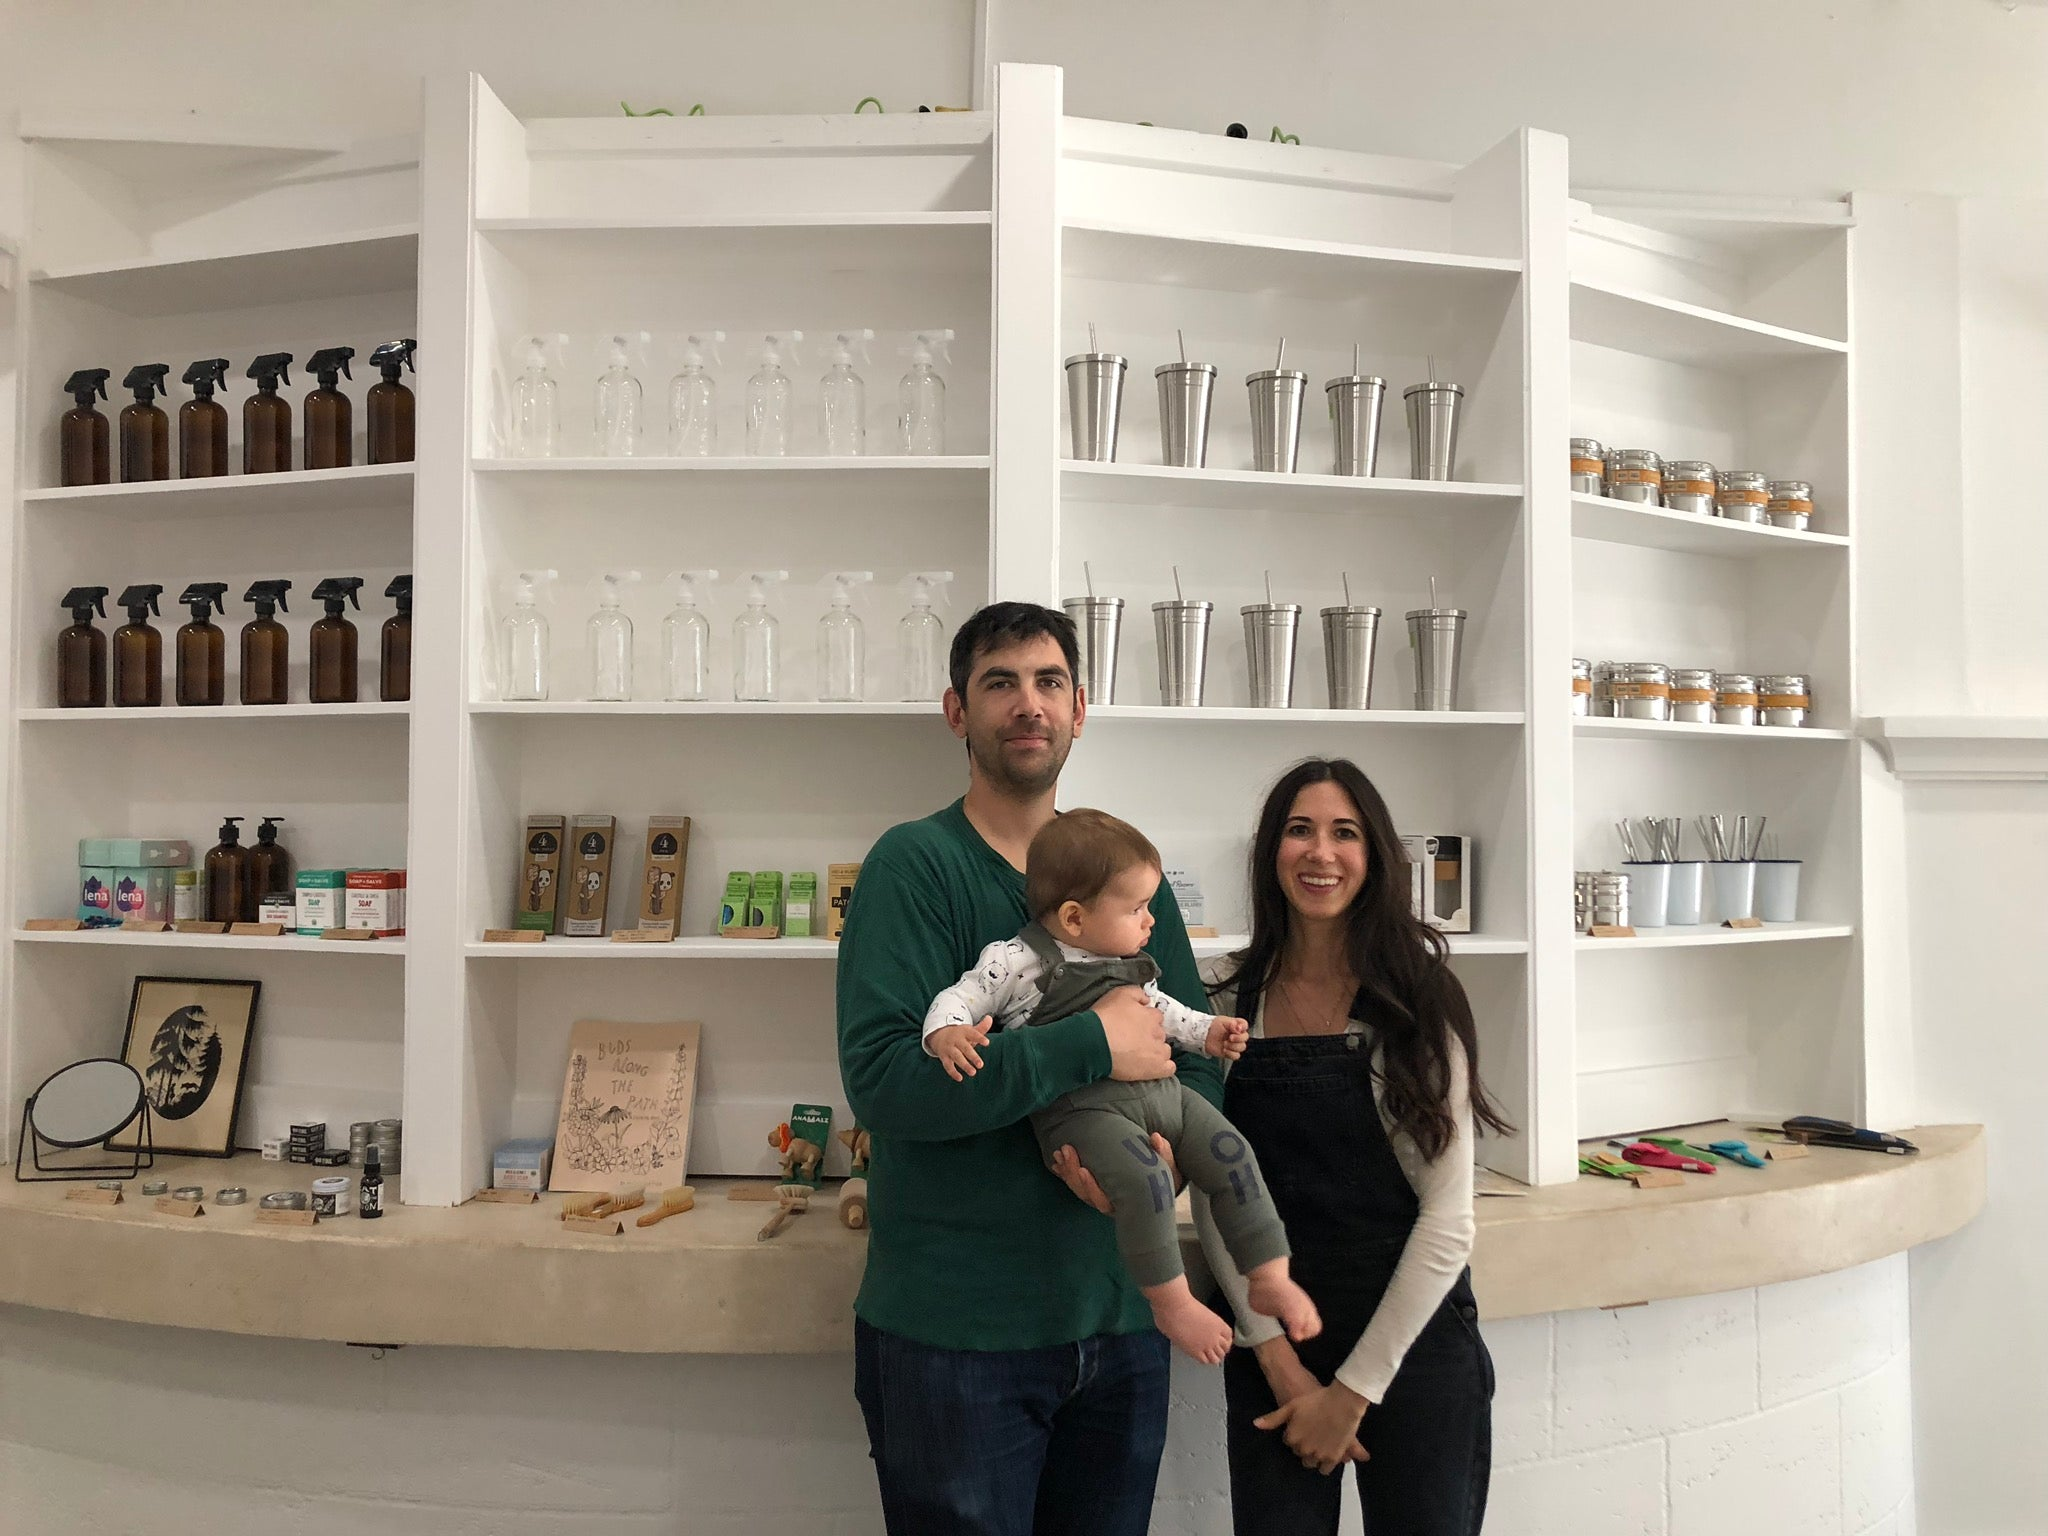 Owners of Wild Minimalist Max and Lily Cameron in their store located in San Anselmo, California with their son Grant.